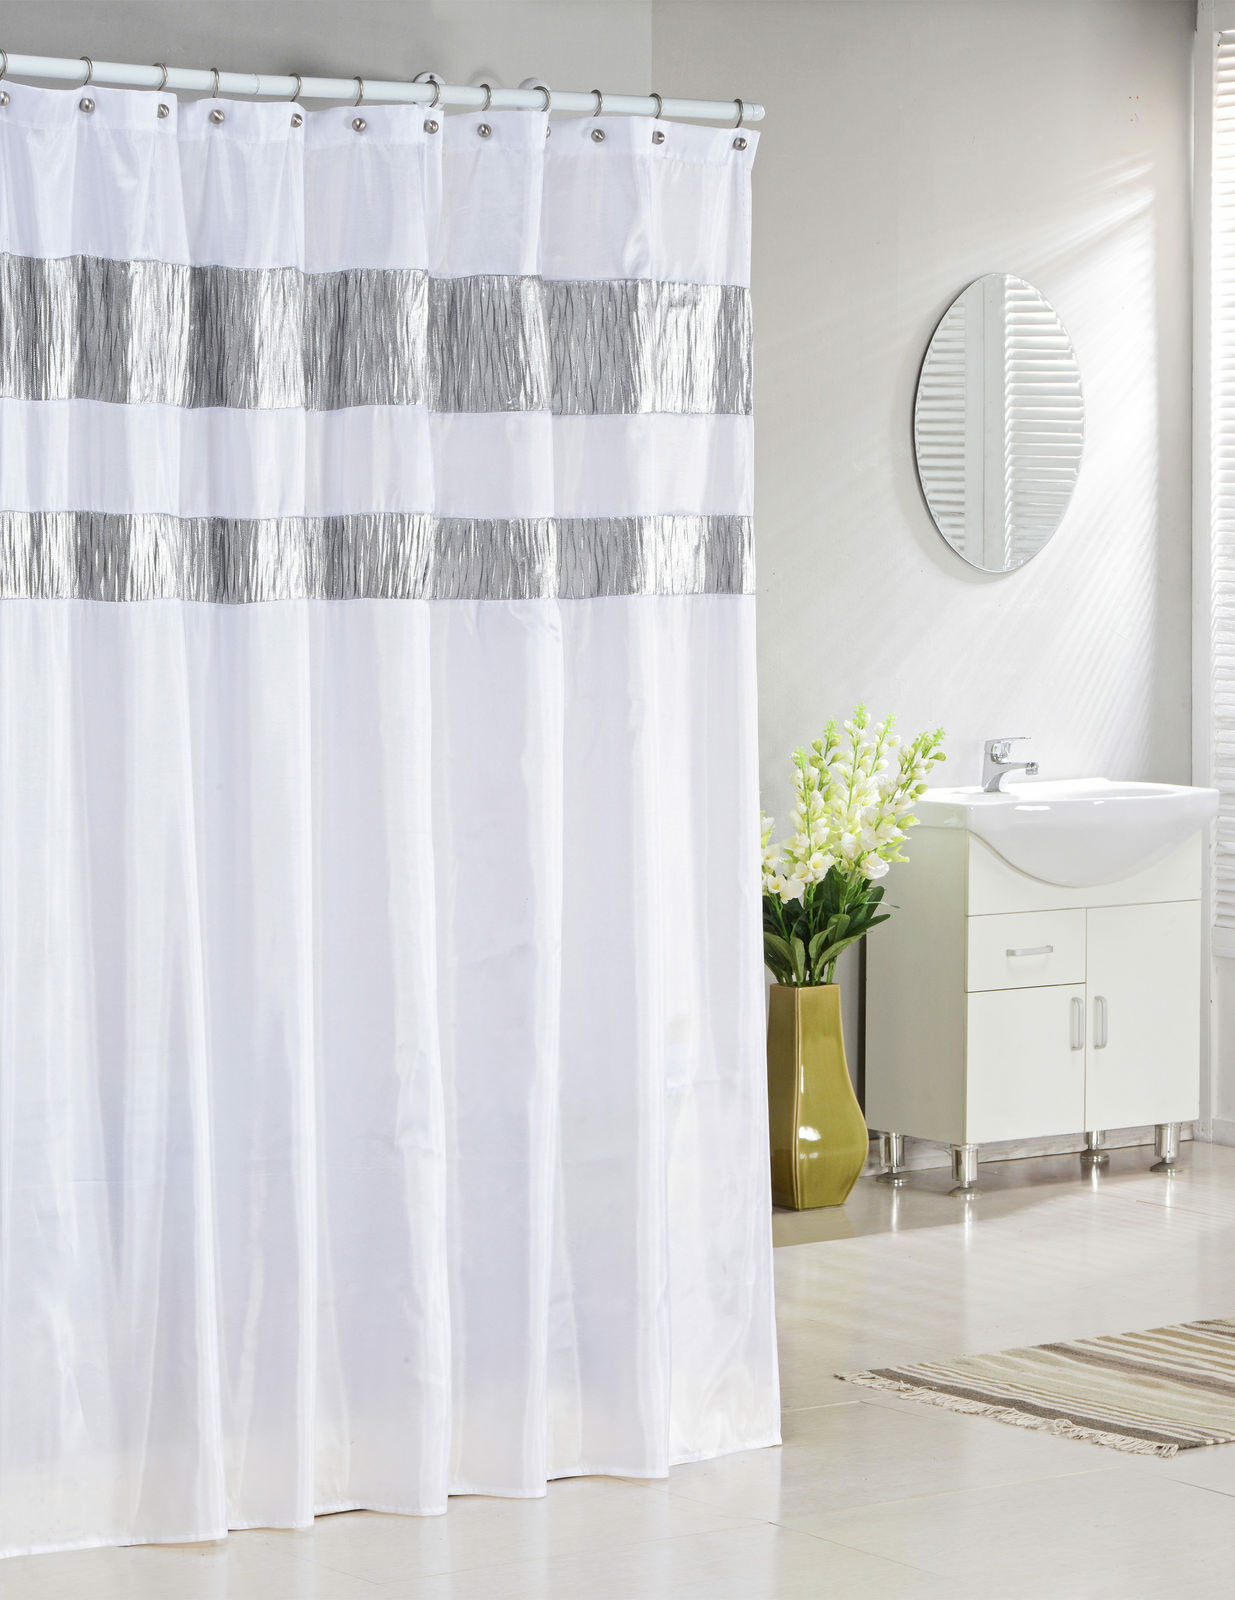 Pure White Fabric Shower Curtain With Silver Metallic Accent Stripes